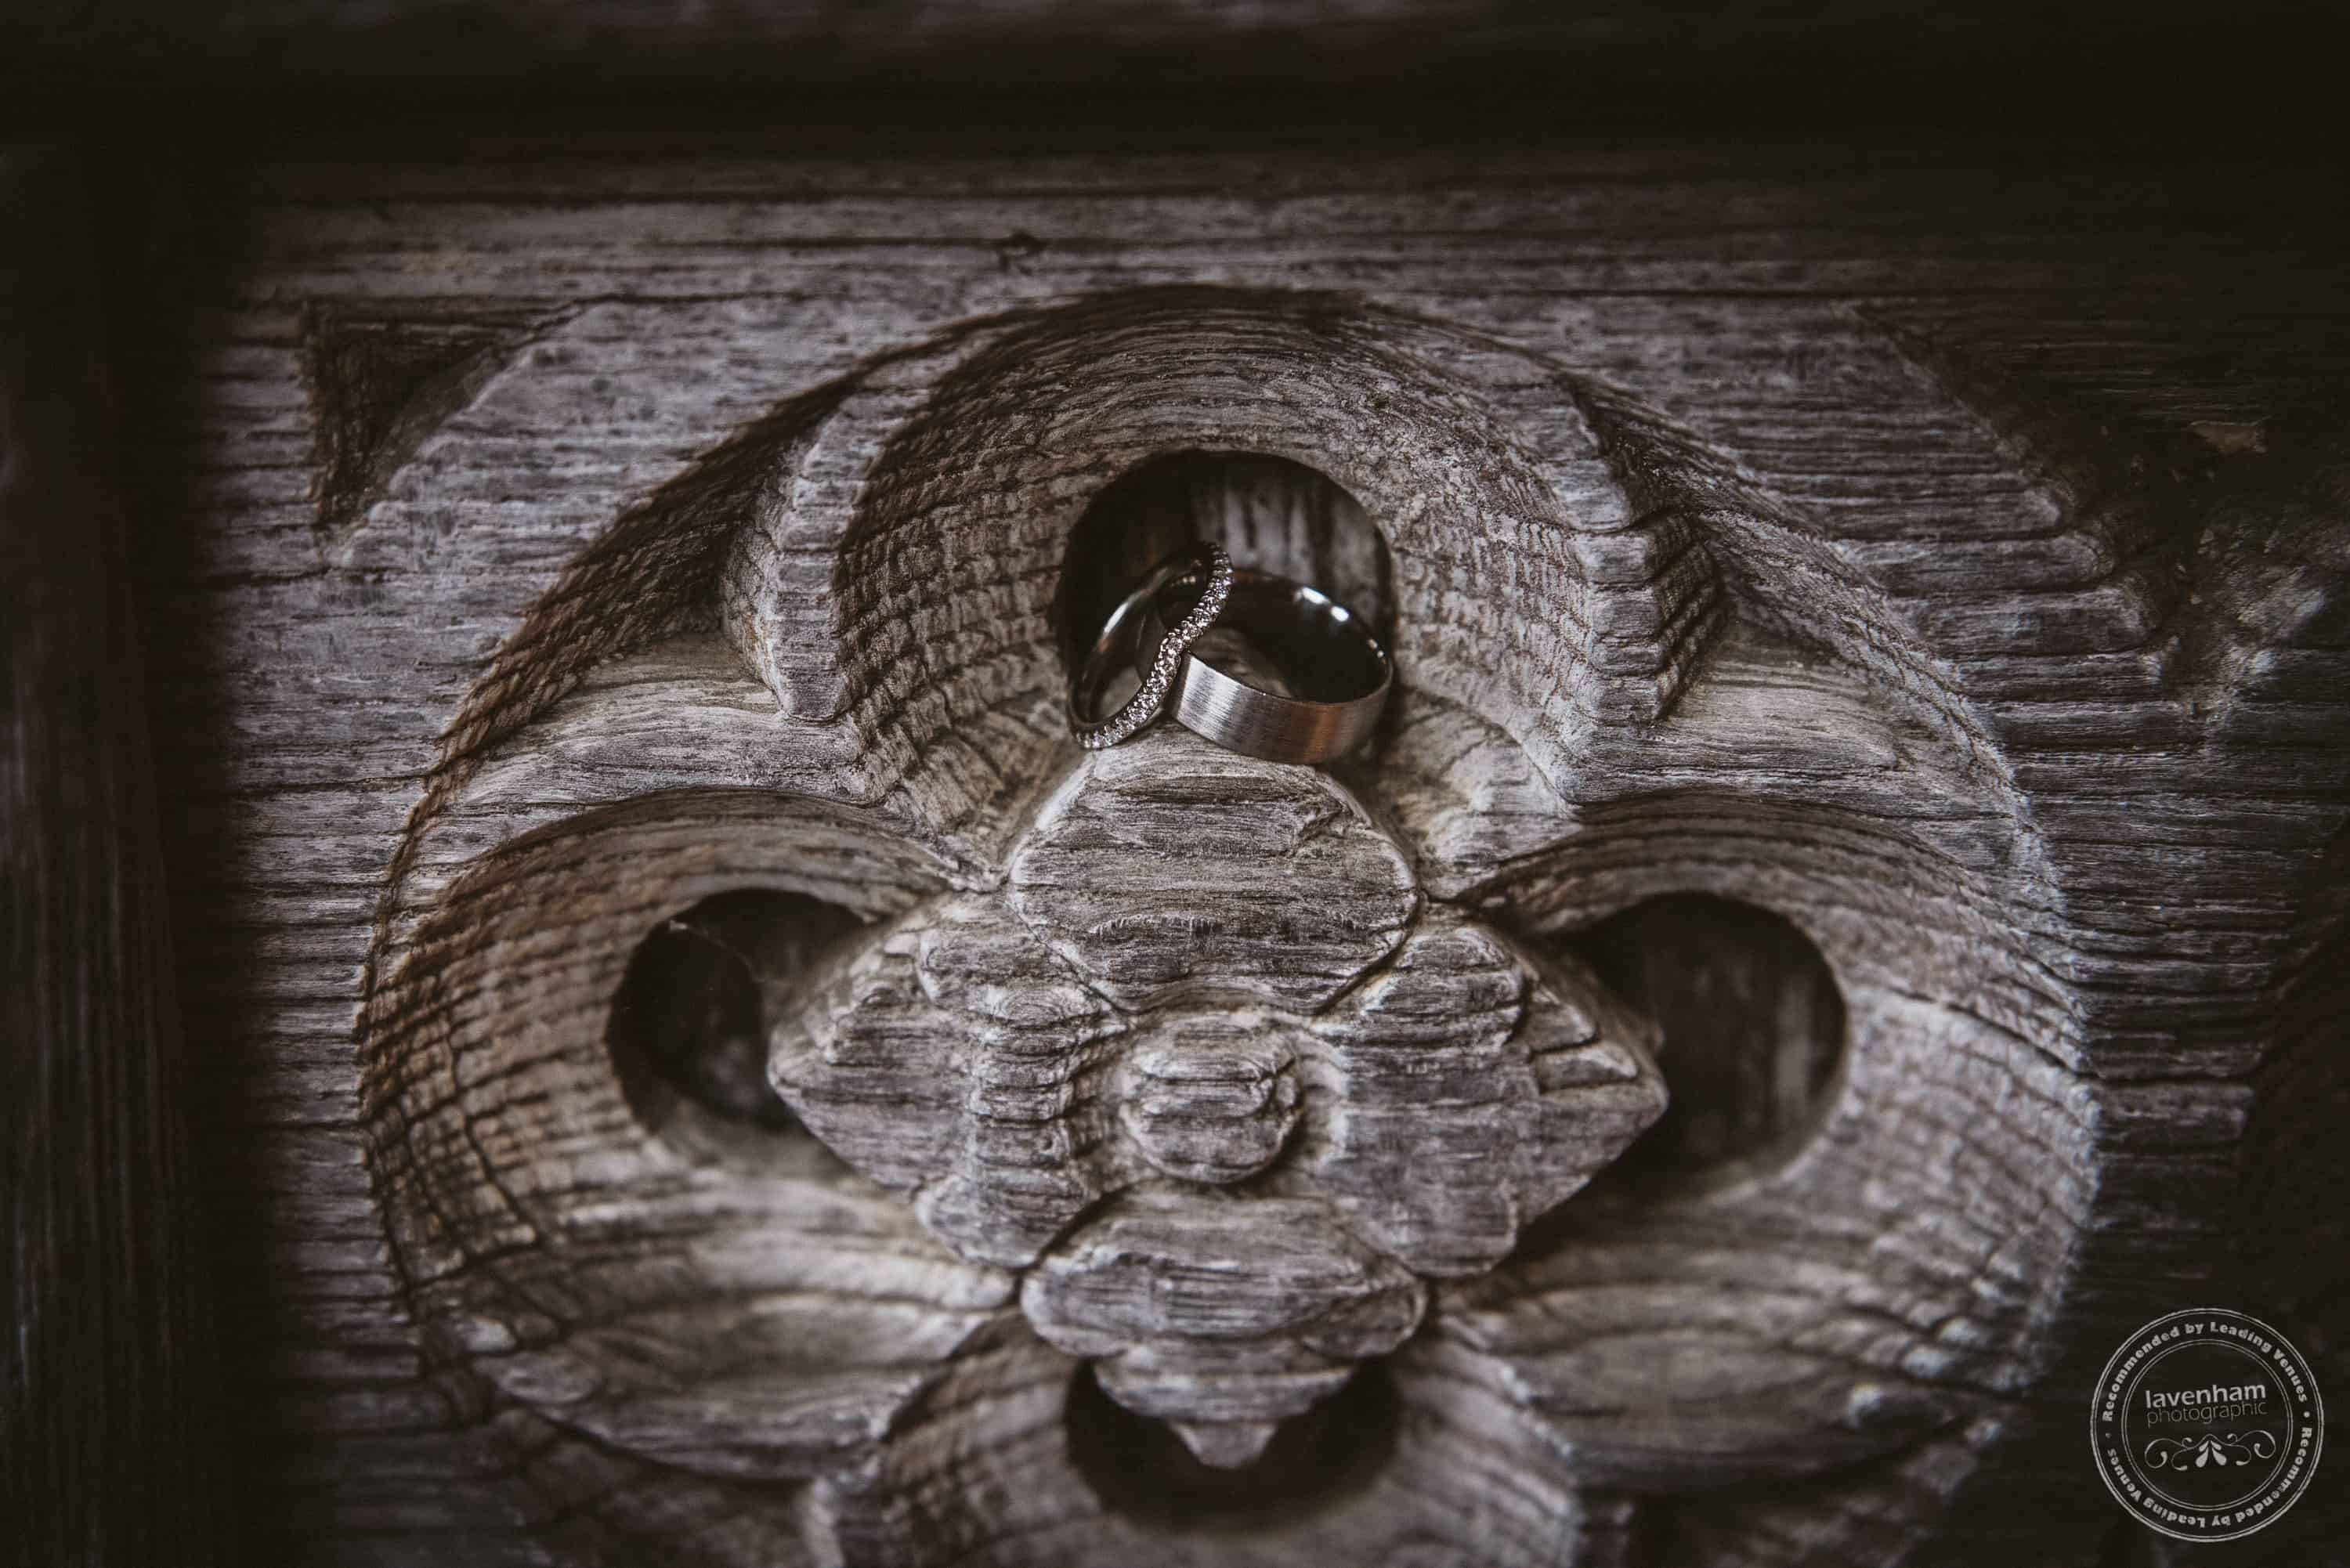 One of the ancient carvings in a doorway at leez Priory is such a nice spot to nestle the wedding rings for a detail photograph!